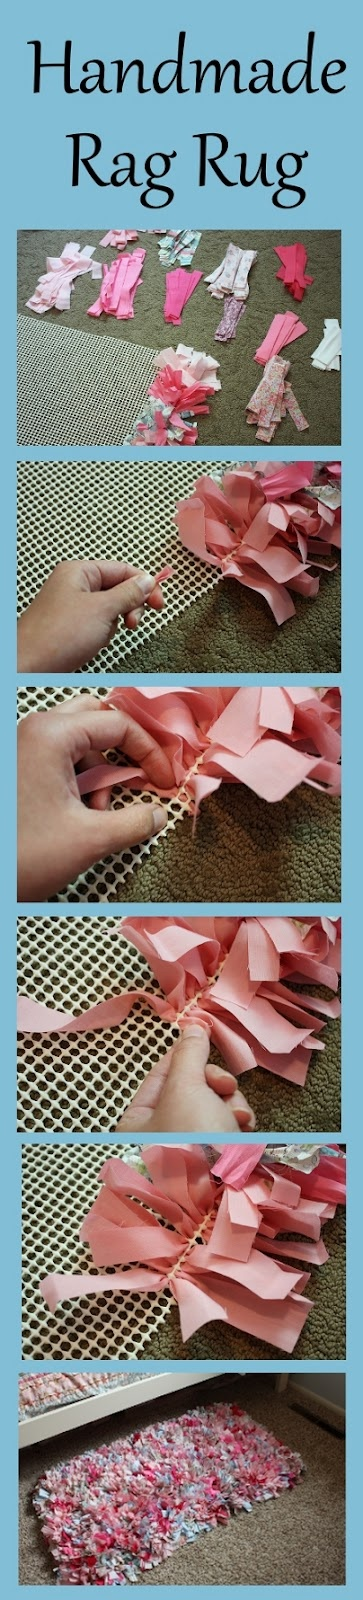 Easy Cheap Diy Home Decorating Ideas Part - 32: Handmade Rag Rug Tutorial